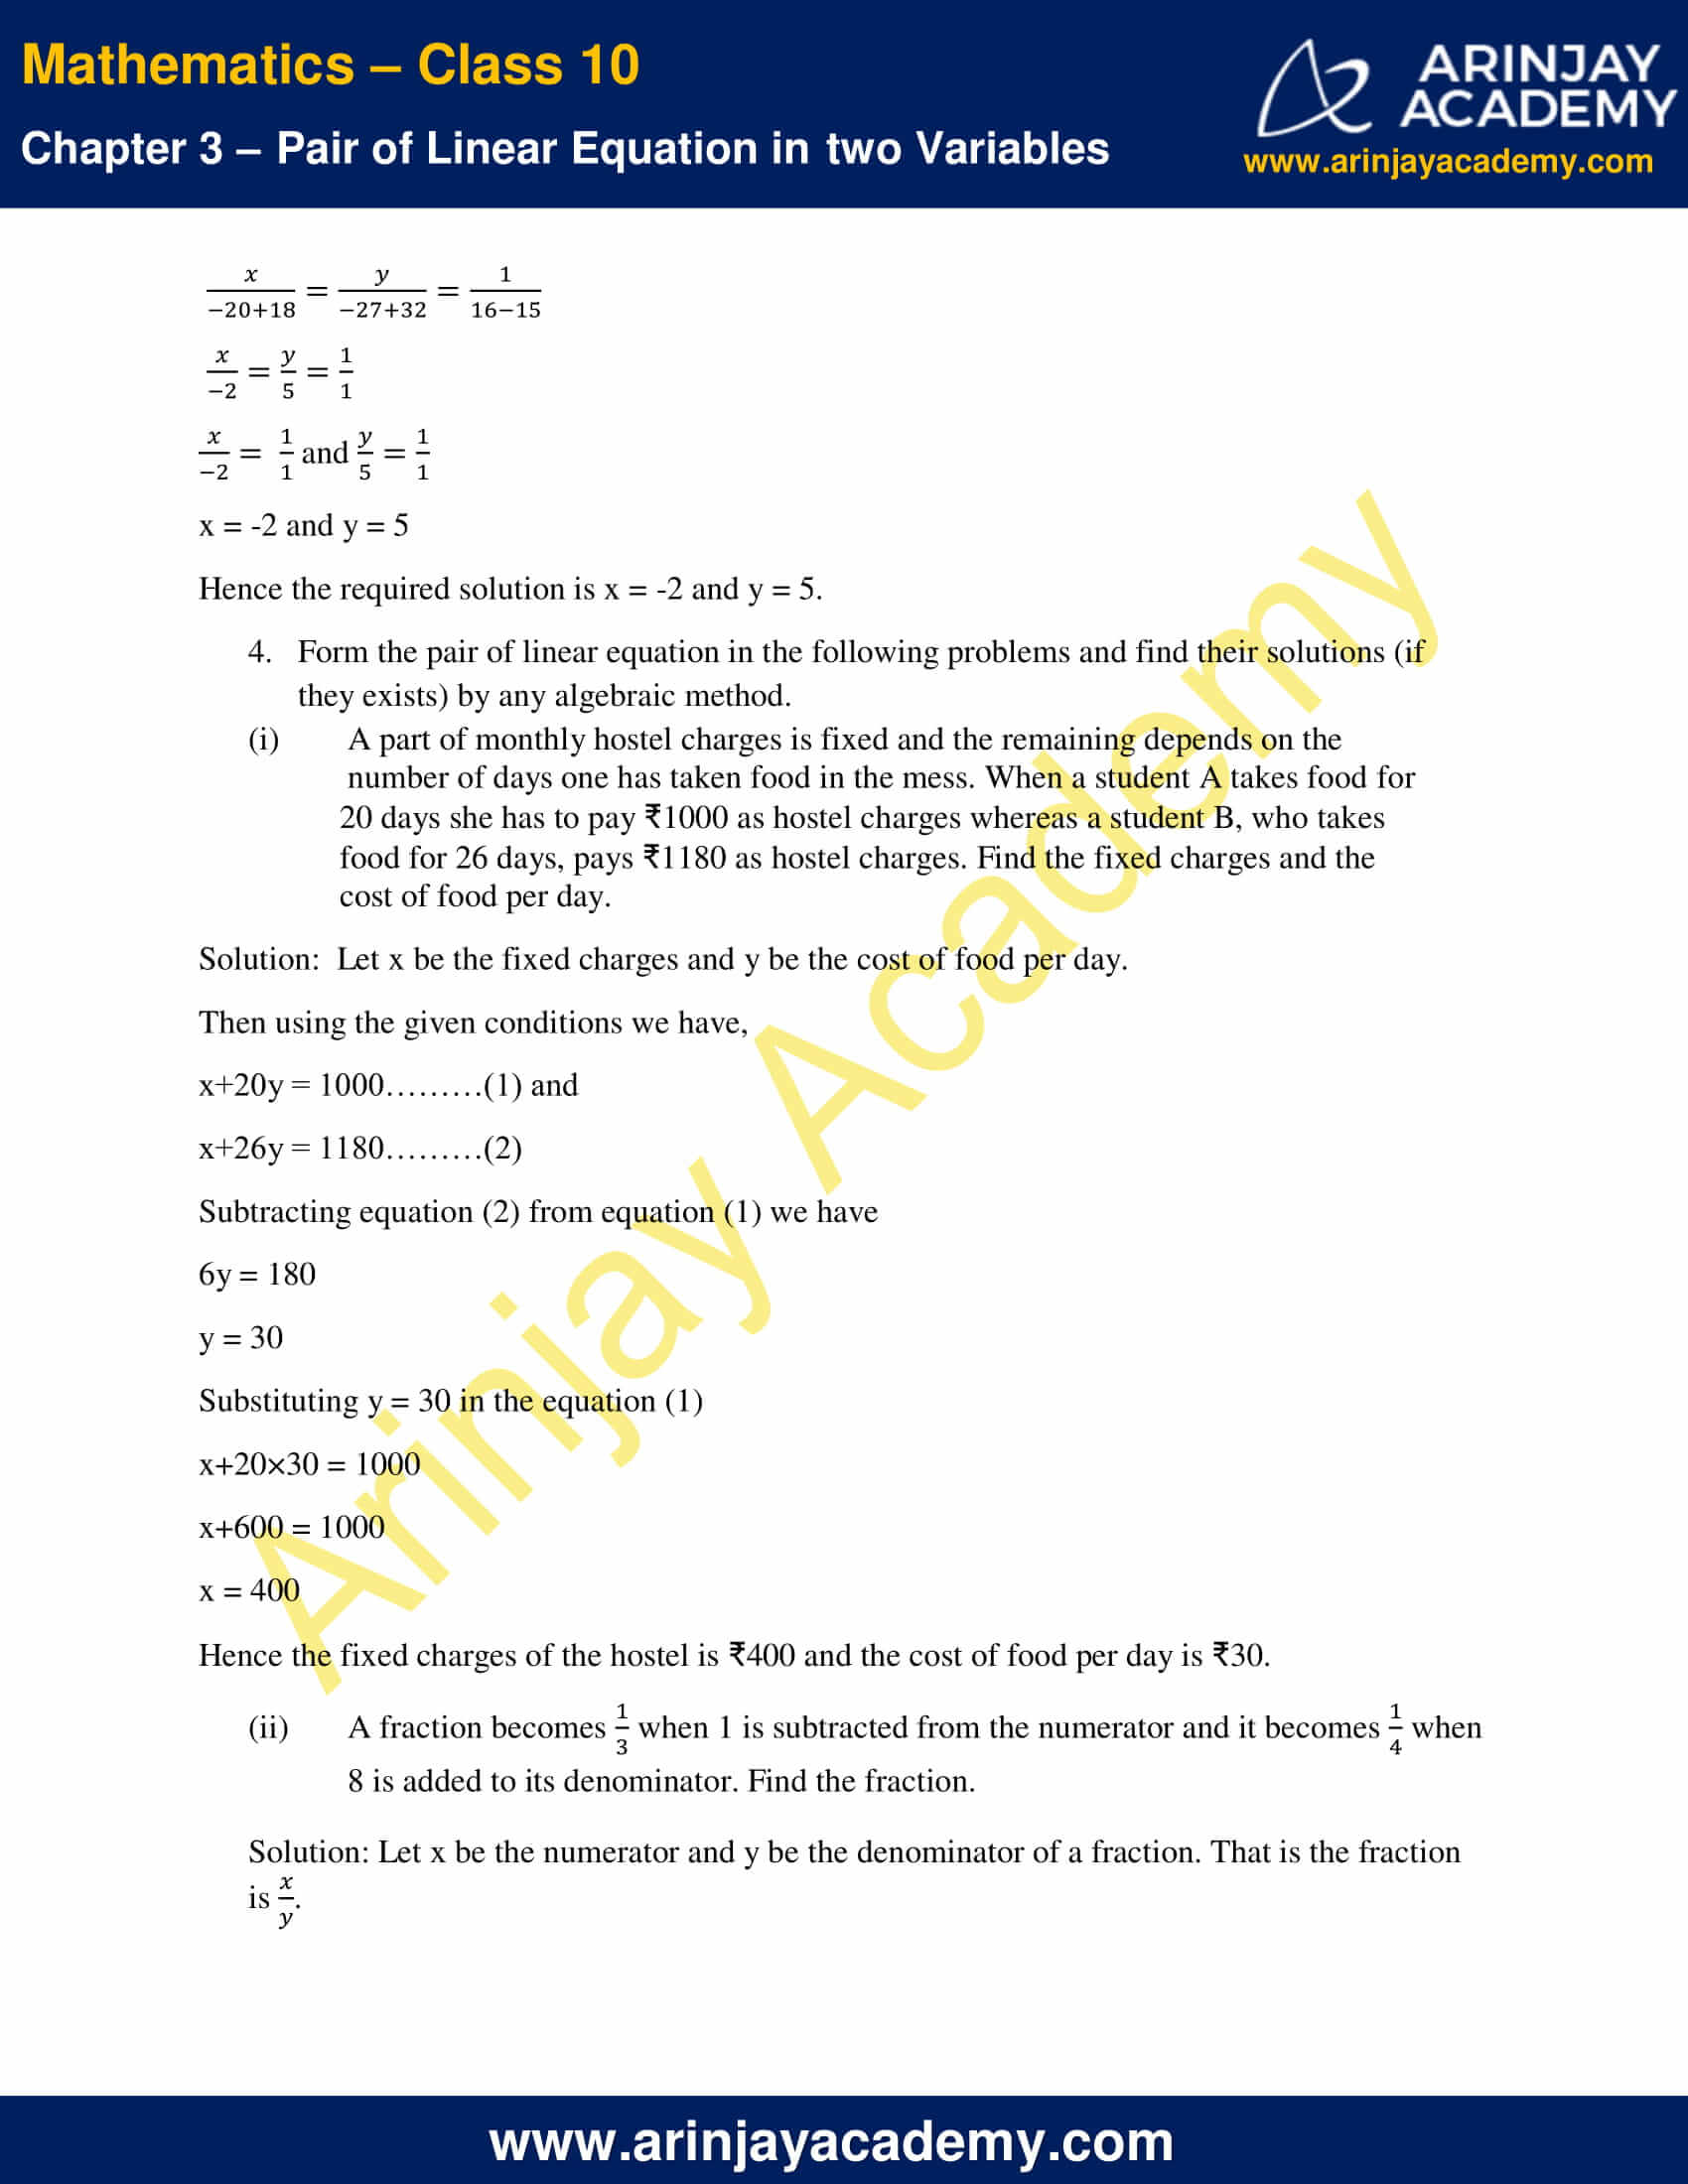 NCERT Solutions For Class 10 Maths Chapter 3 Exercise 3.5 image 7